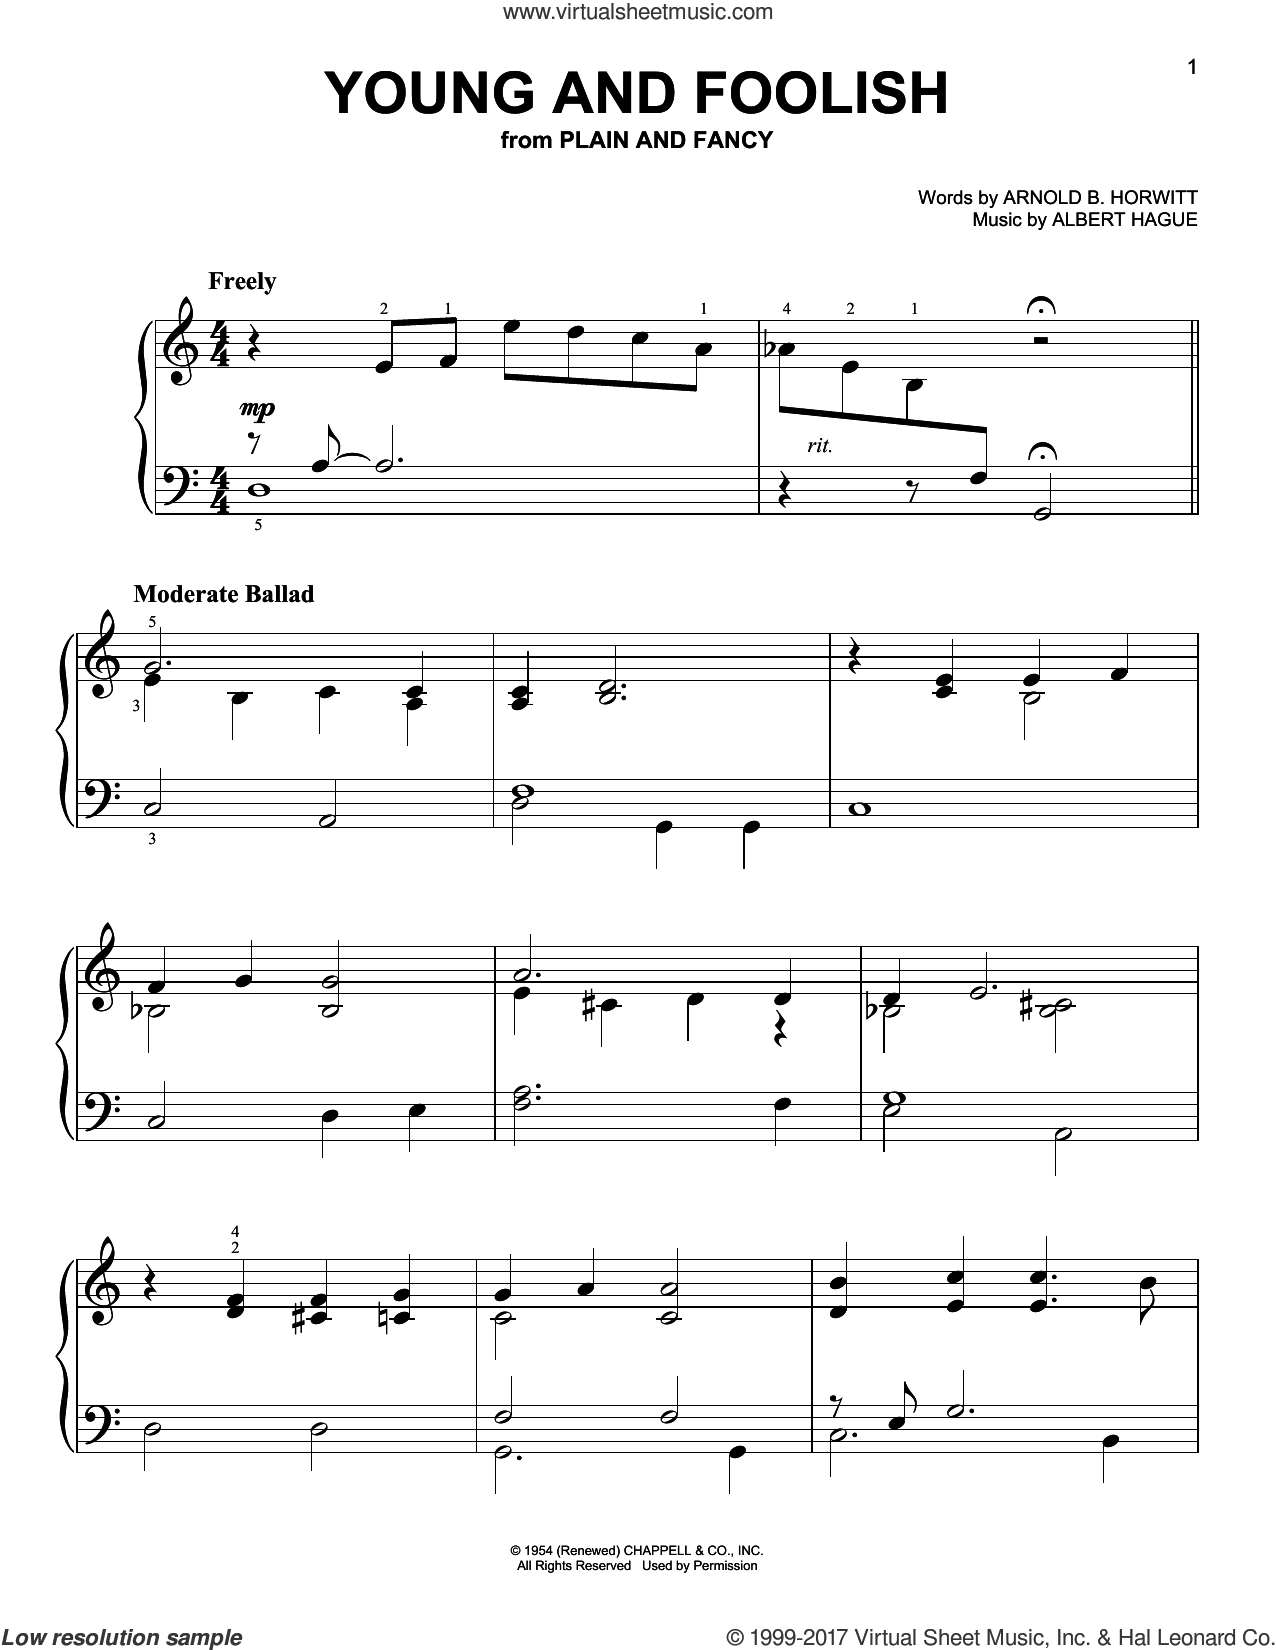 Young And Foolish sheet music for piano solo by Arnold B. Horwitt and Albert Hague, easy. Score Image Preview.